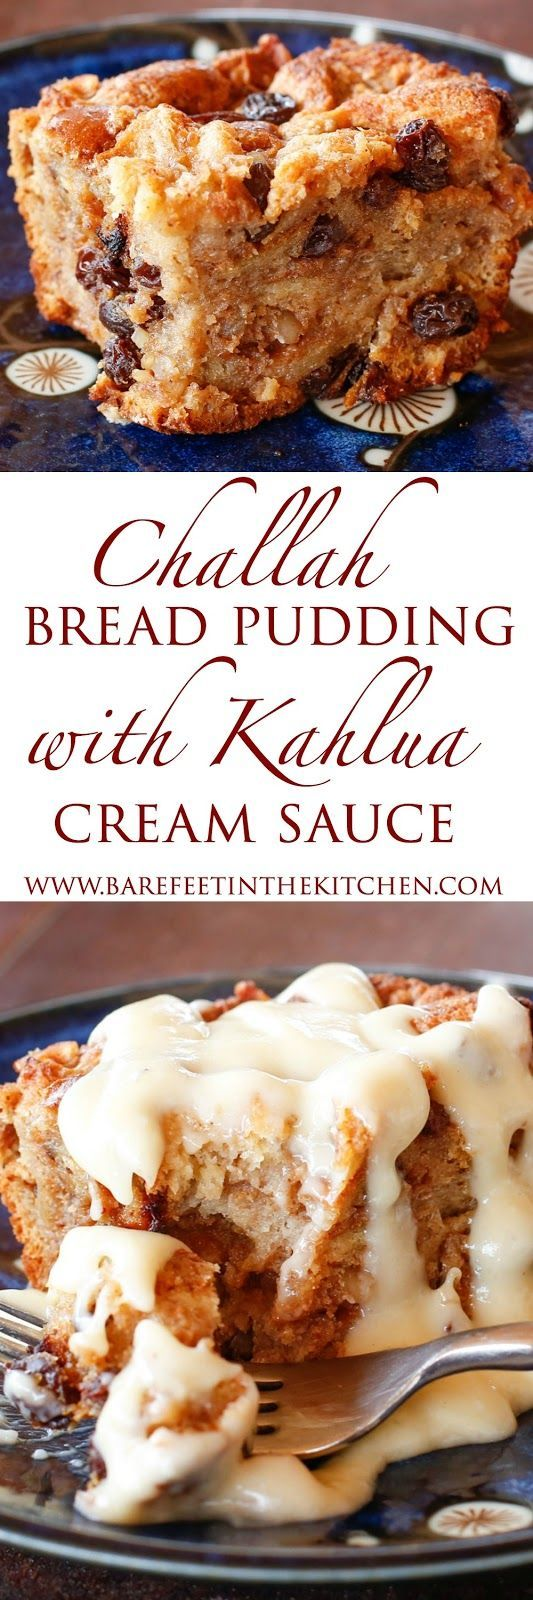 Challah Bread Pudding {a.k.a. the BEST bread pudding EVER} - get the recipe at barefeetinthekitchen.com